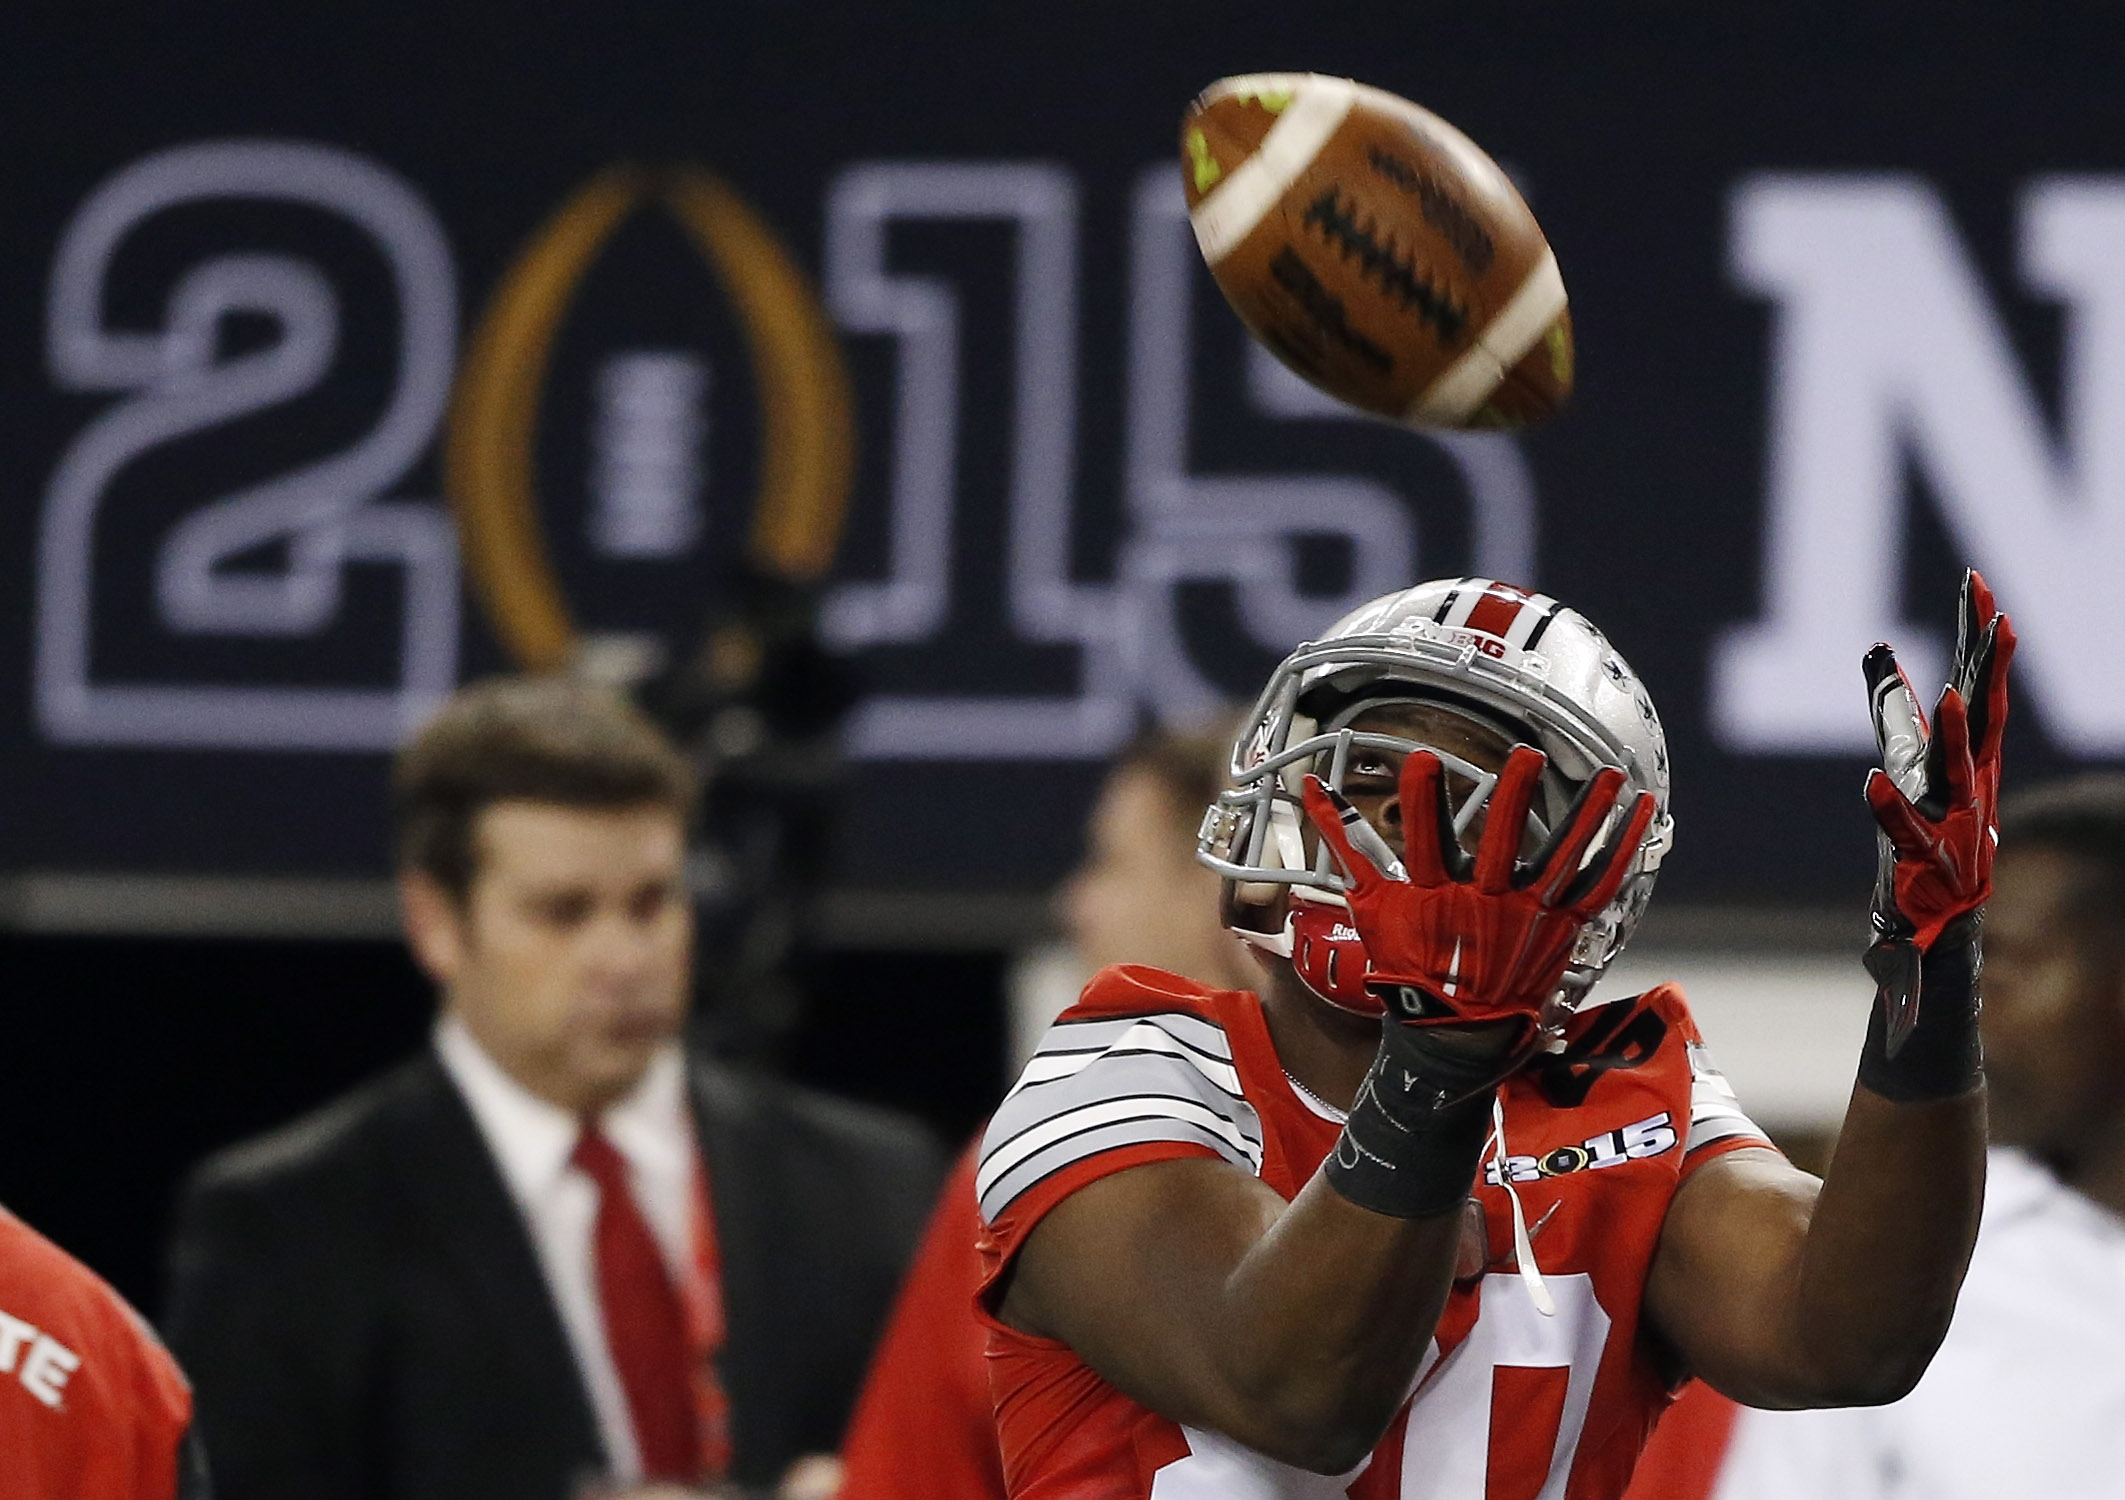 Ohio State's Noah Brown warms up before the NCAA college football playoff championship game against Oregon Monday, Jan. 12, 2015, in Arlington, Texas. (AP Photo/Brandon Wade)